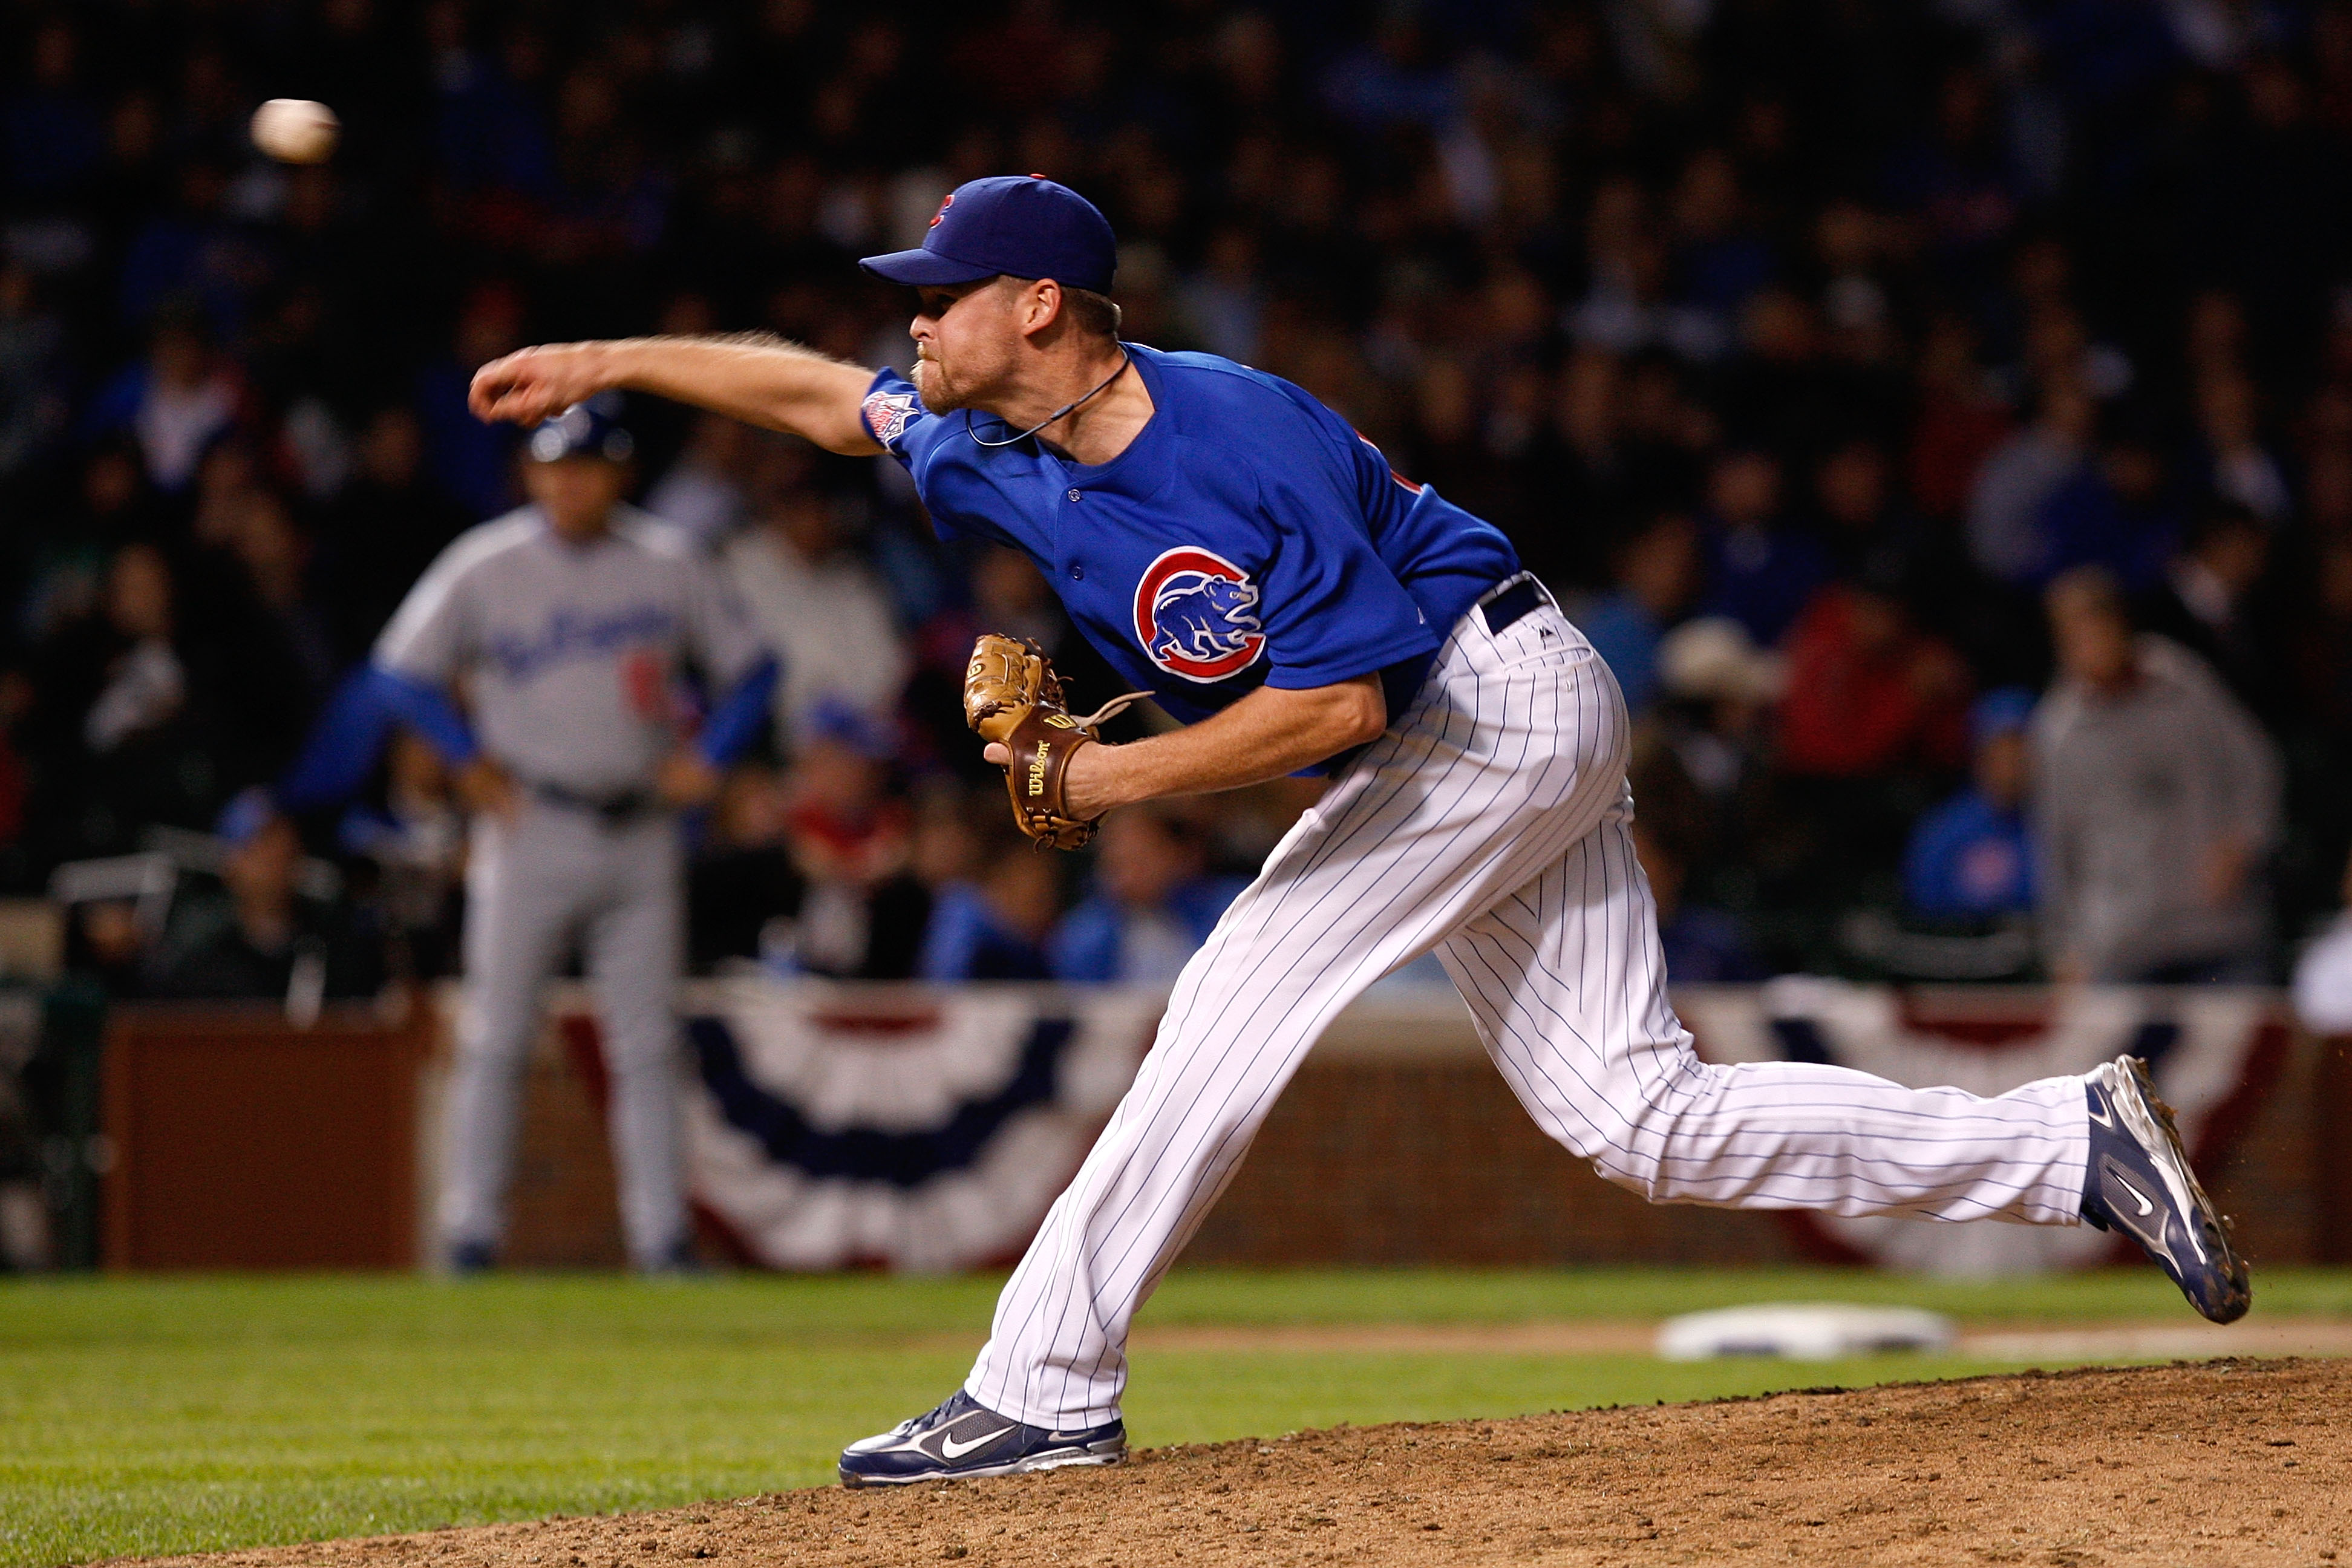 CHICAGO - OCTOBER 02:  Kerry Wood #34 of the Chicago Cubs throws a pitch against the Los Angeles Dodgers in Game Two of the NLDS during the 2008 MLB Playoffs at Wrigley Field on October 2, 2008 in Chicago, Illinois. The Dodgers won 10-3. (Photo by Jamie S